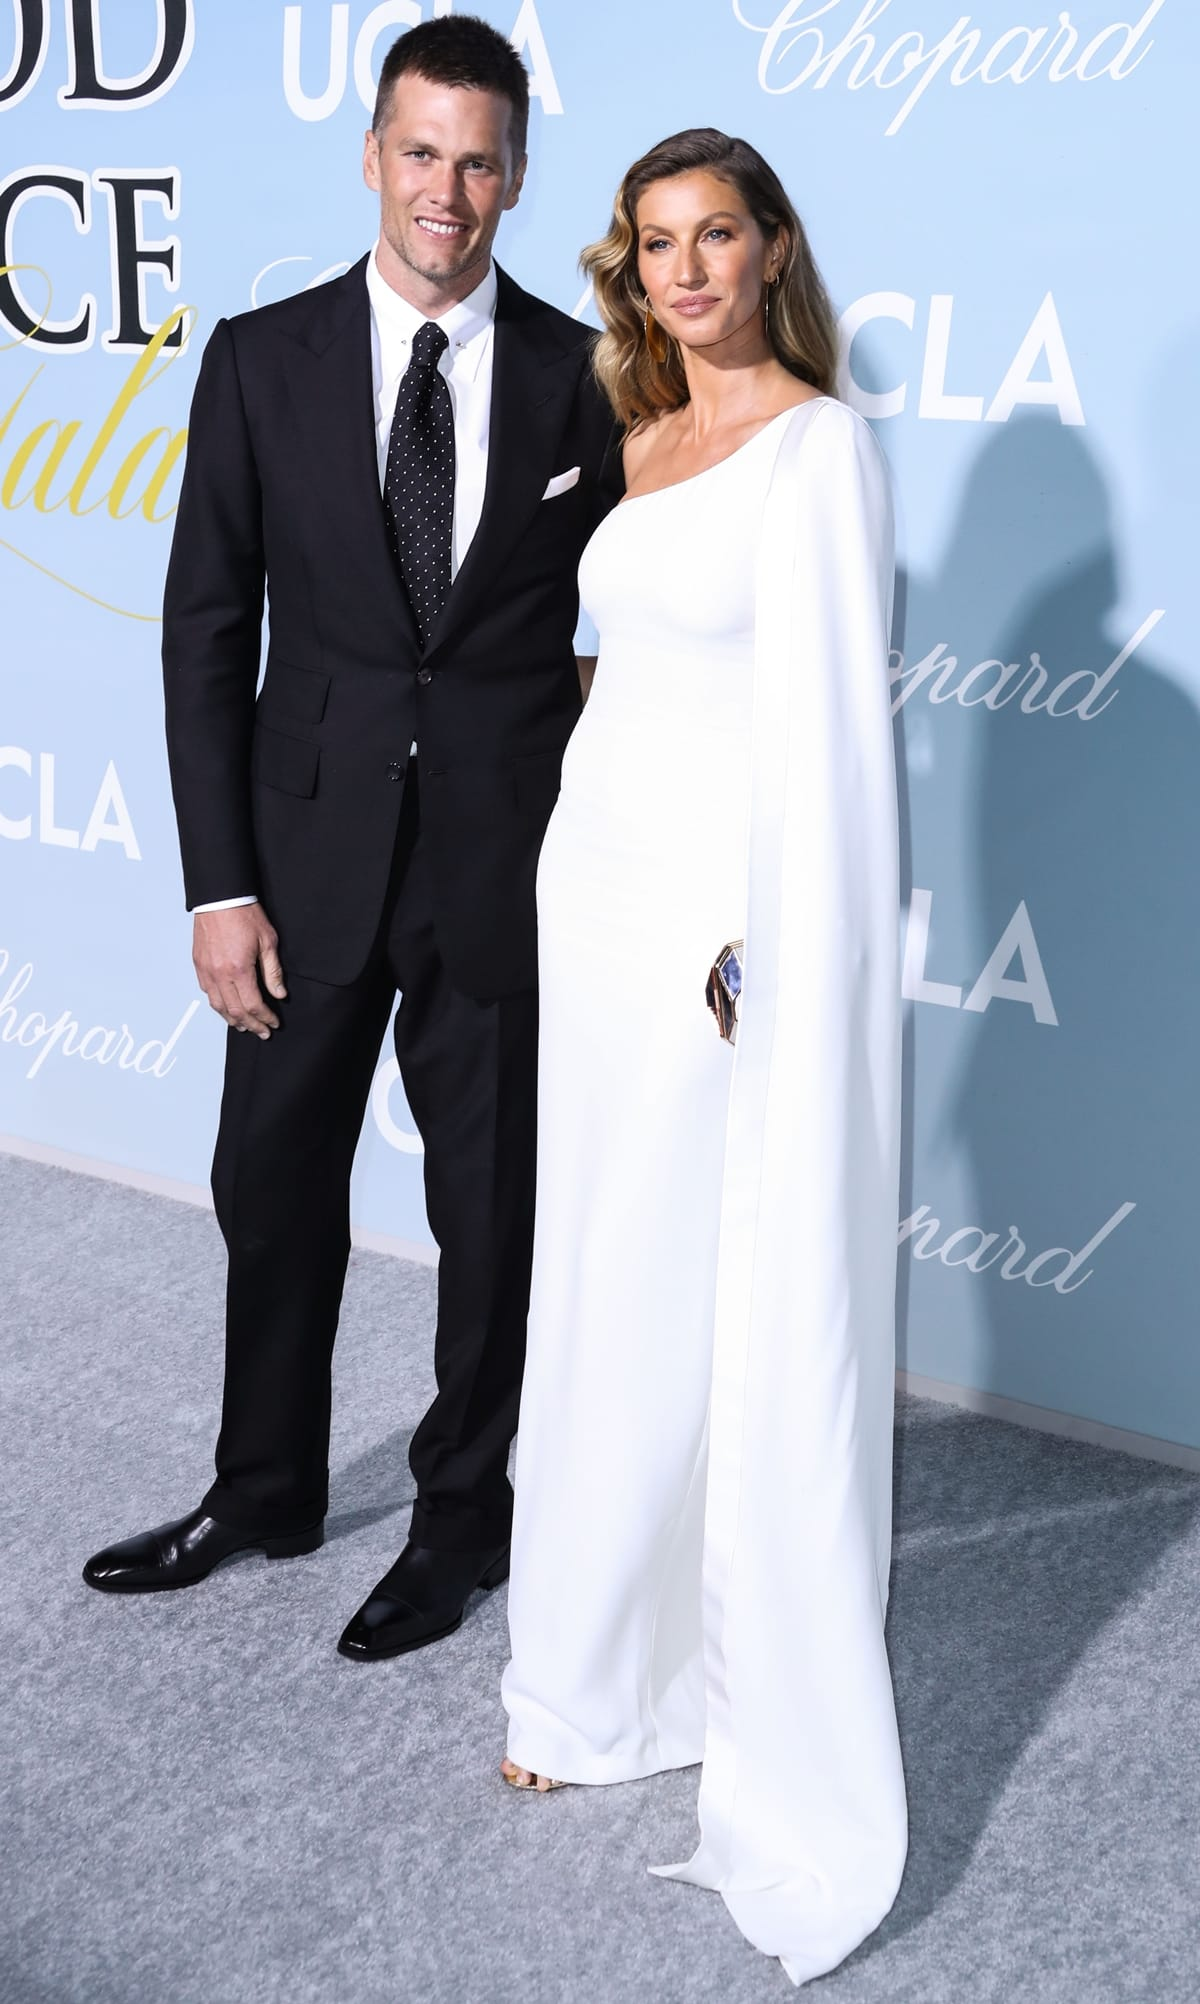 Gisele Bündchen in a white one-shoulder Stella McCartney dress with Tom Brady in a black suit at the 2019 Hollywood For Science Gala